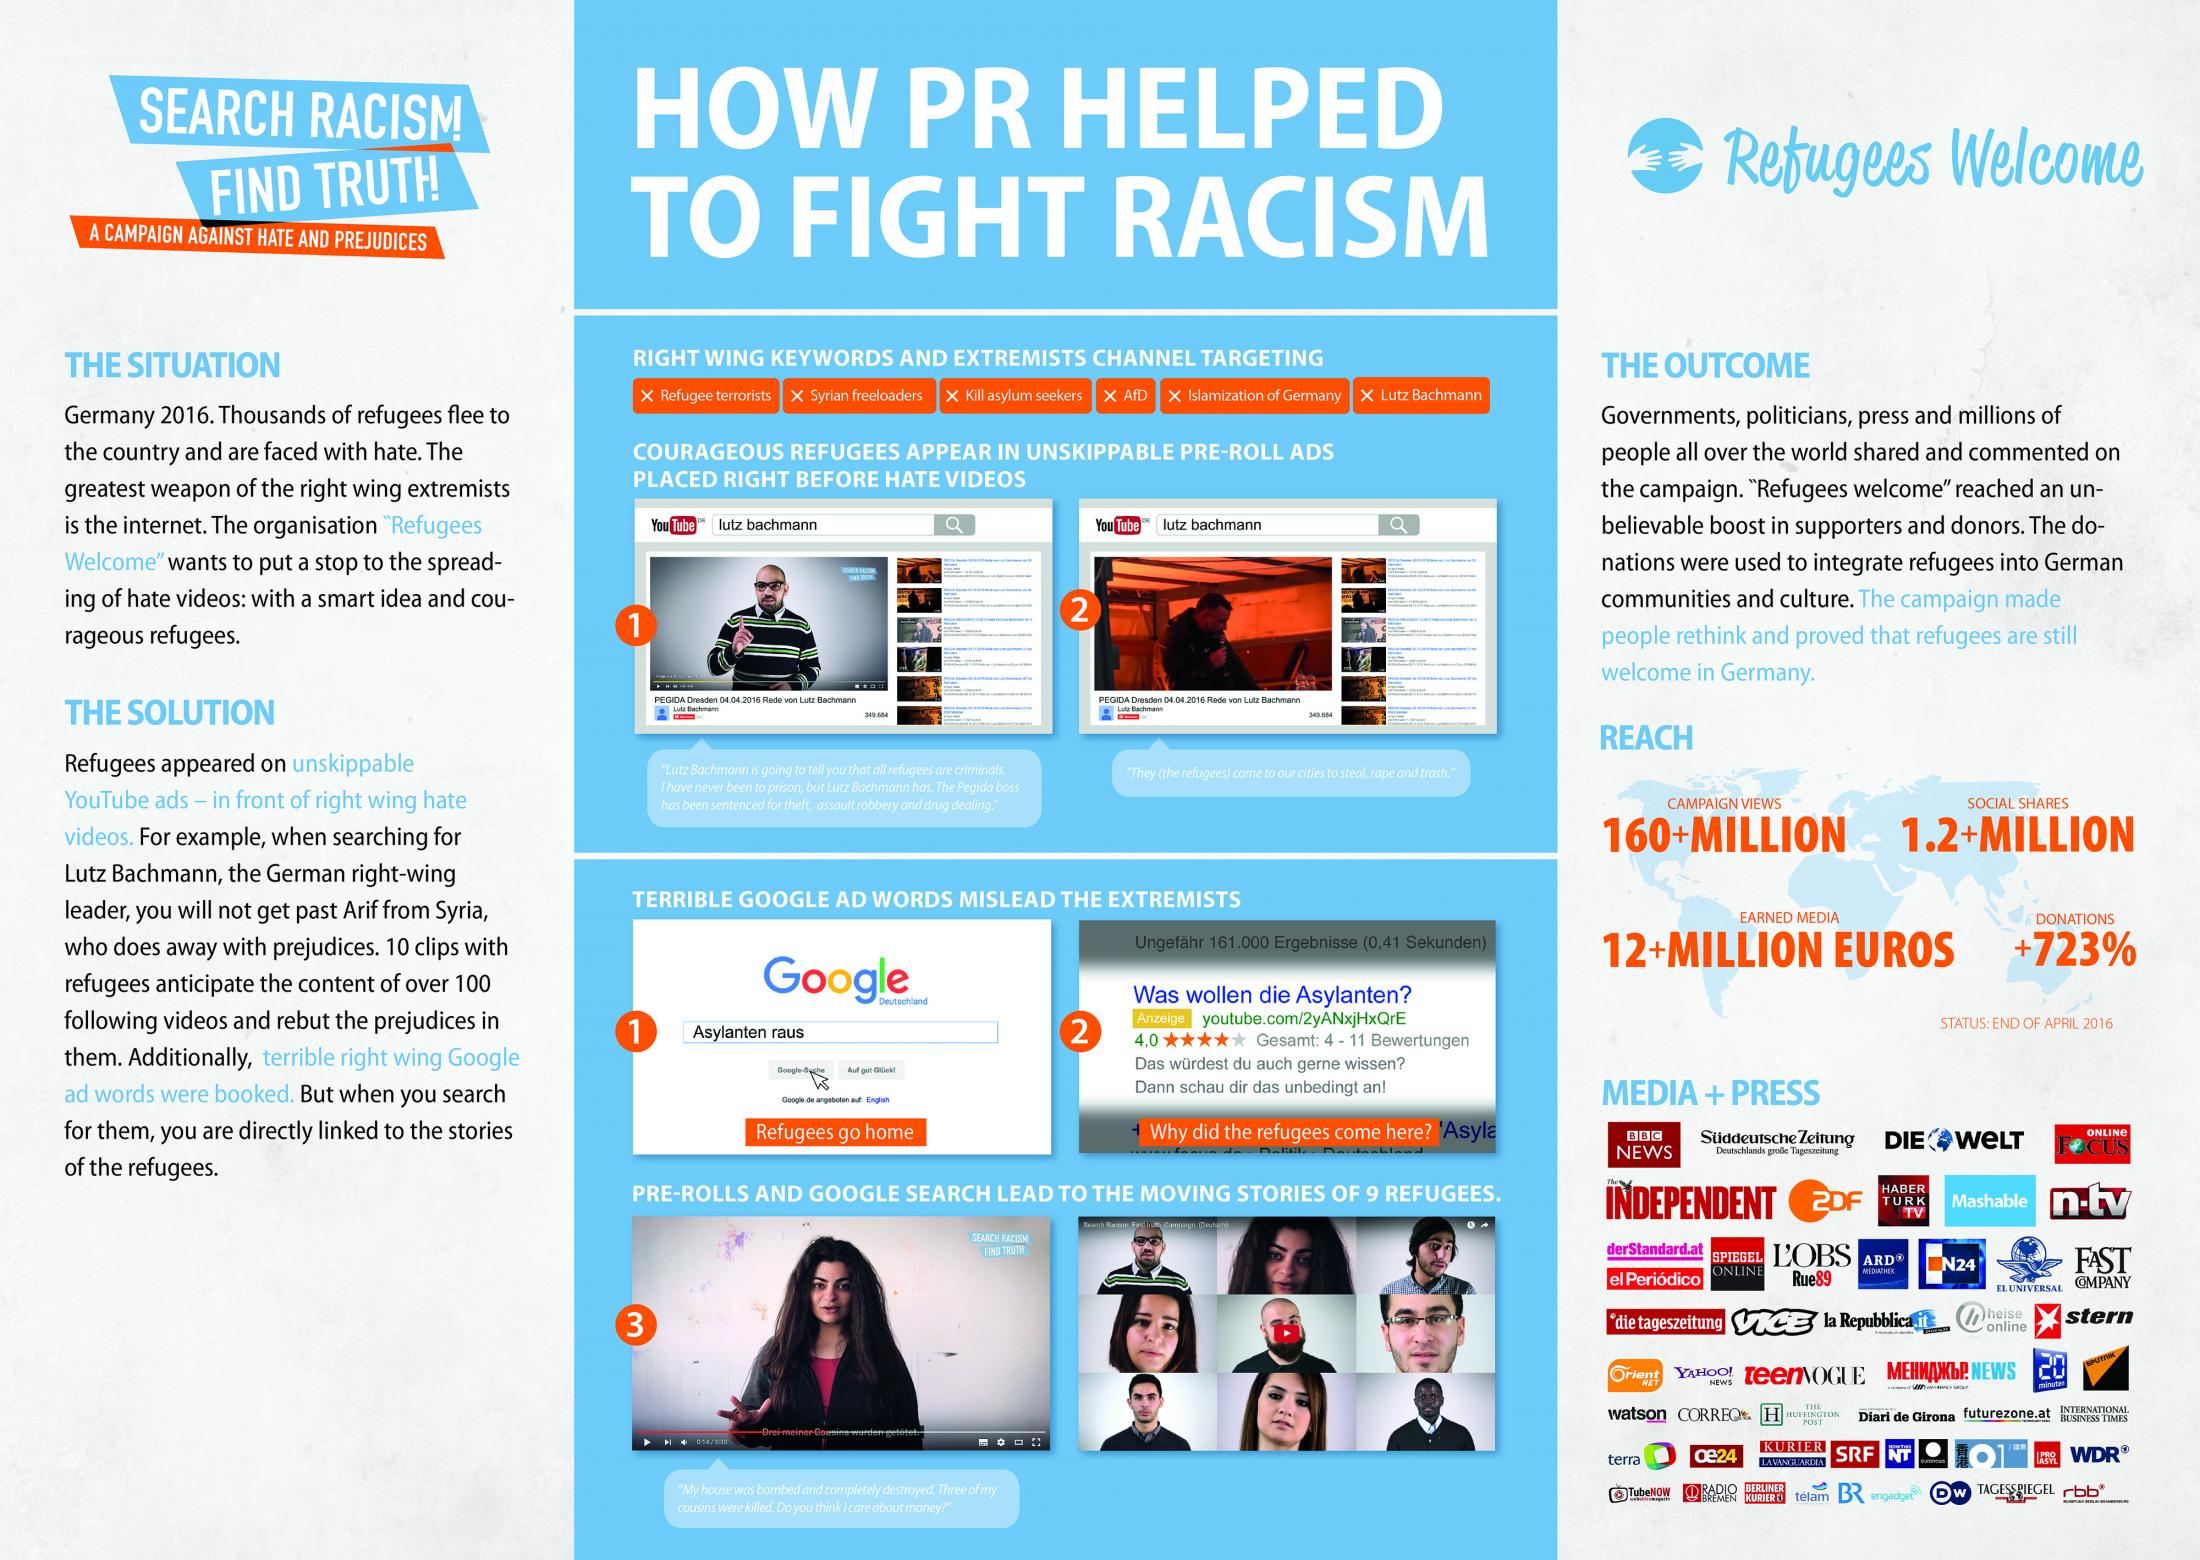 Thumbnail for Search racism. Find truth.